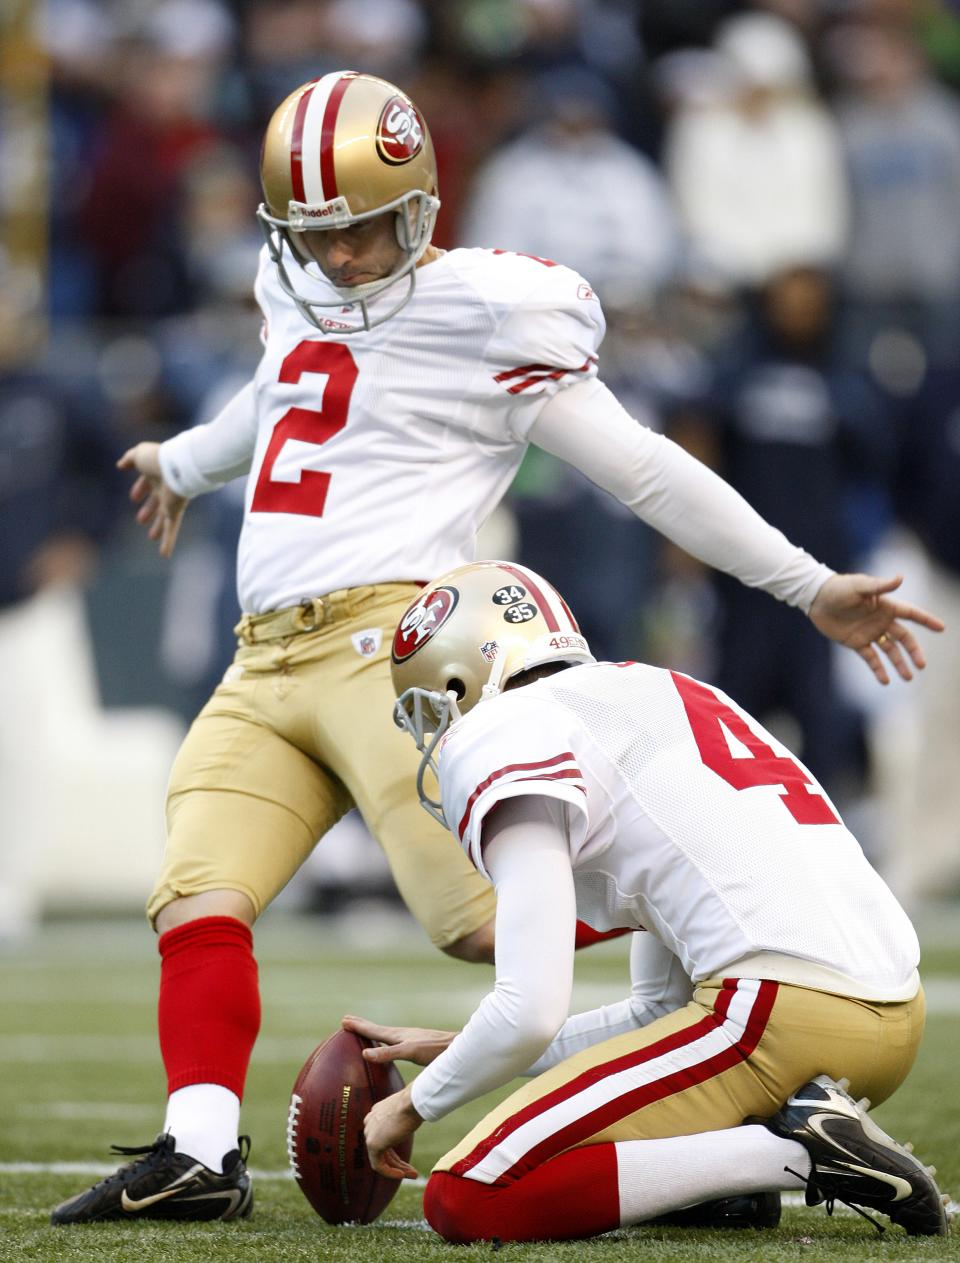 San Francisco 49ers'  David Akers kicks a field goal against the Seattle Seahawks in the second half of an NFL football game Saturday, Dec. 24, 2011, in Seattle. (AP Photo/Kevin Casey)